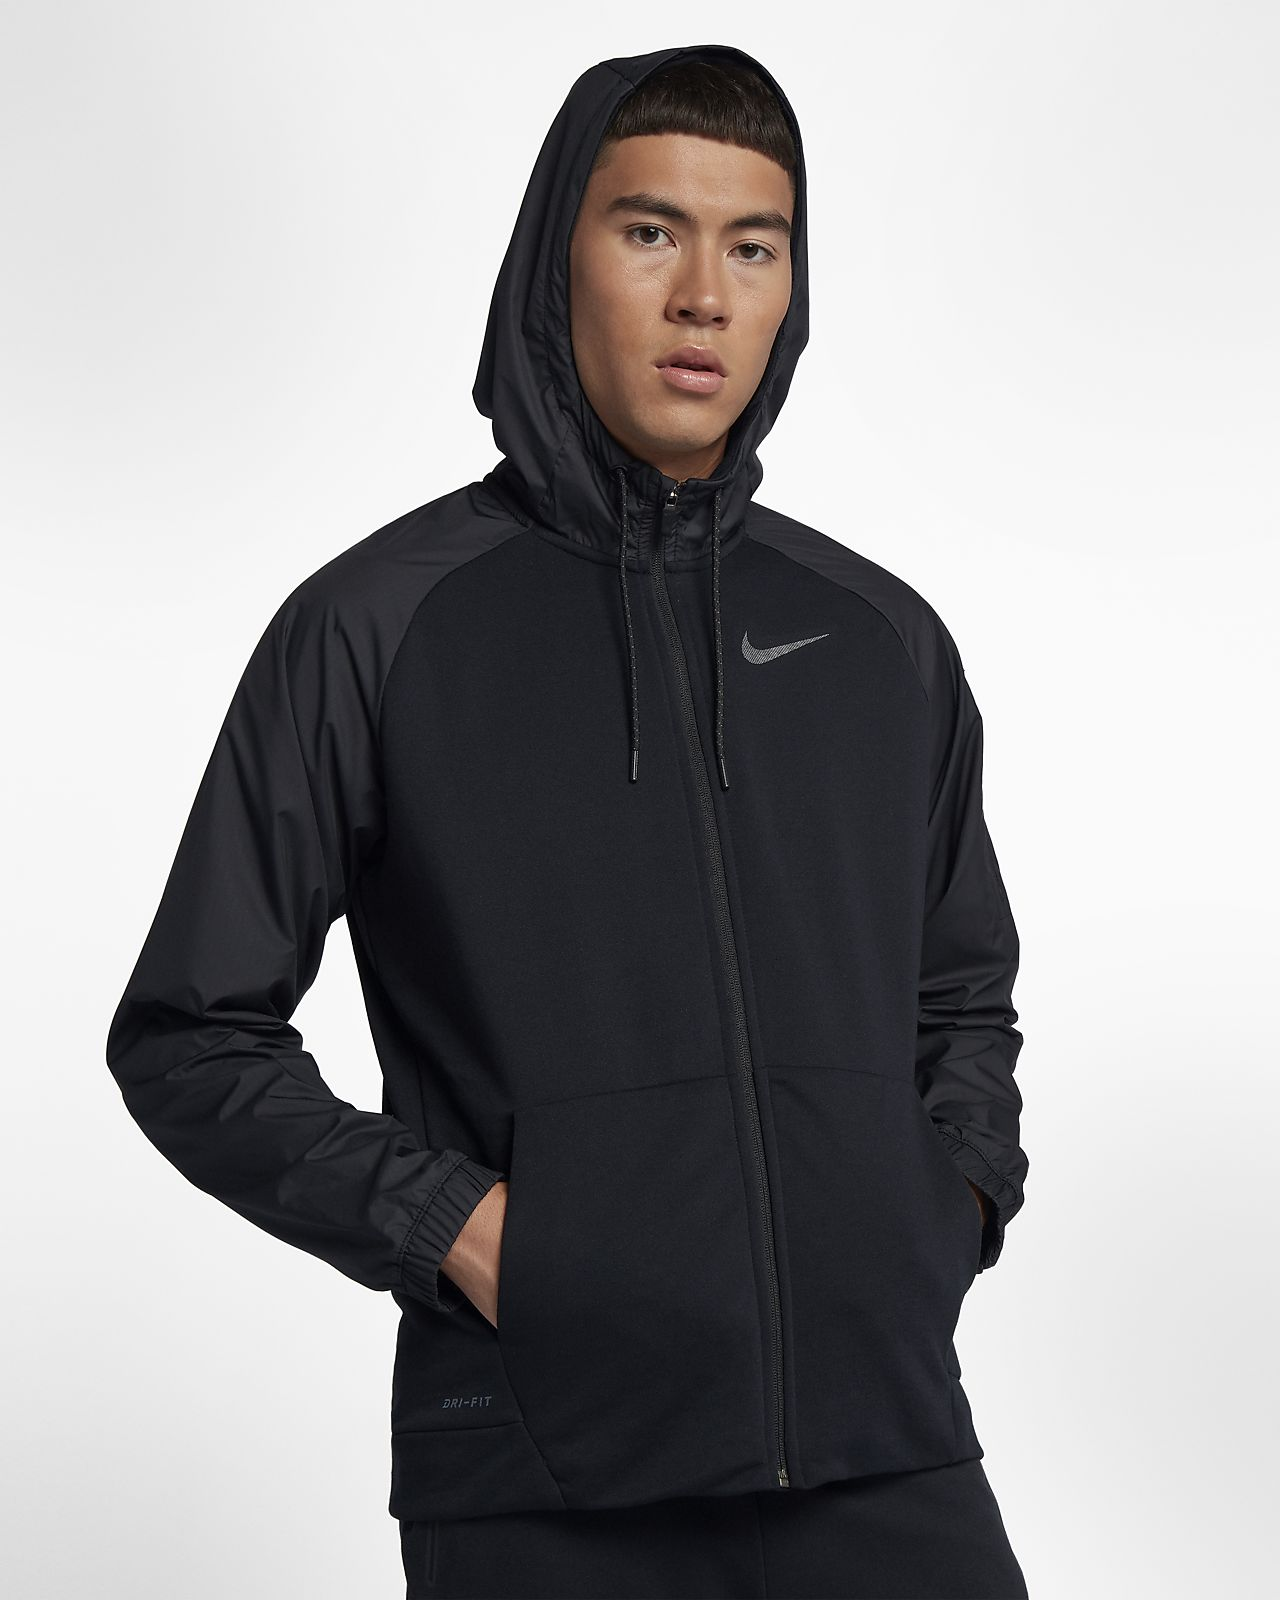 1bf58a98 Nike Dri-FIT Men's Utility Full-Zip Training Hoodie. Nike.com SE